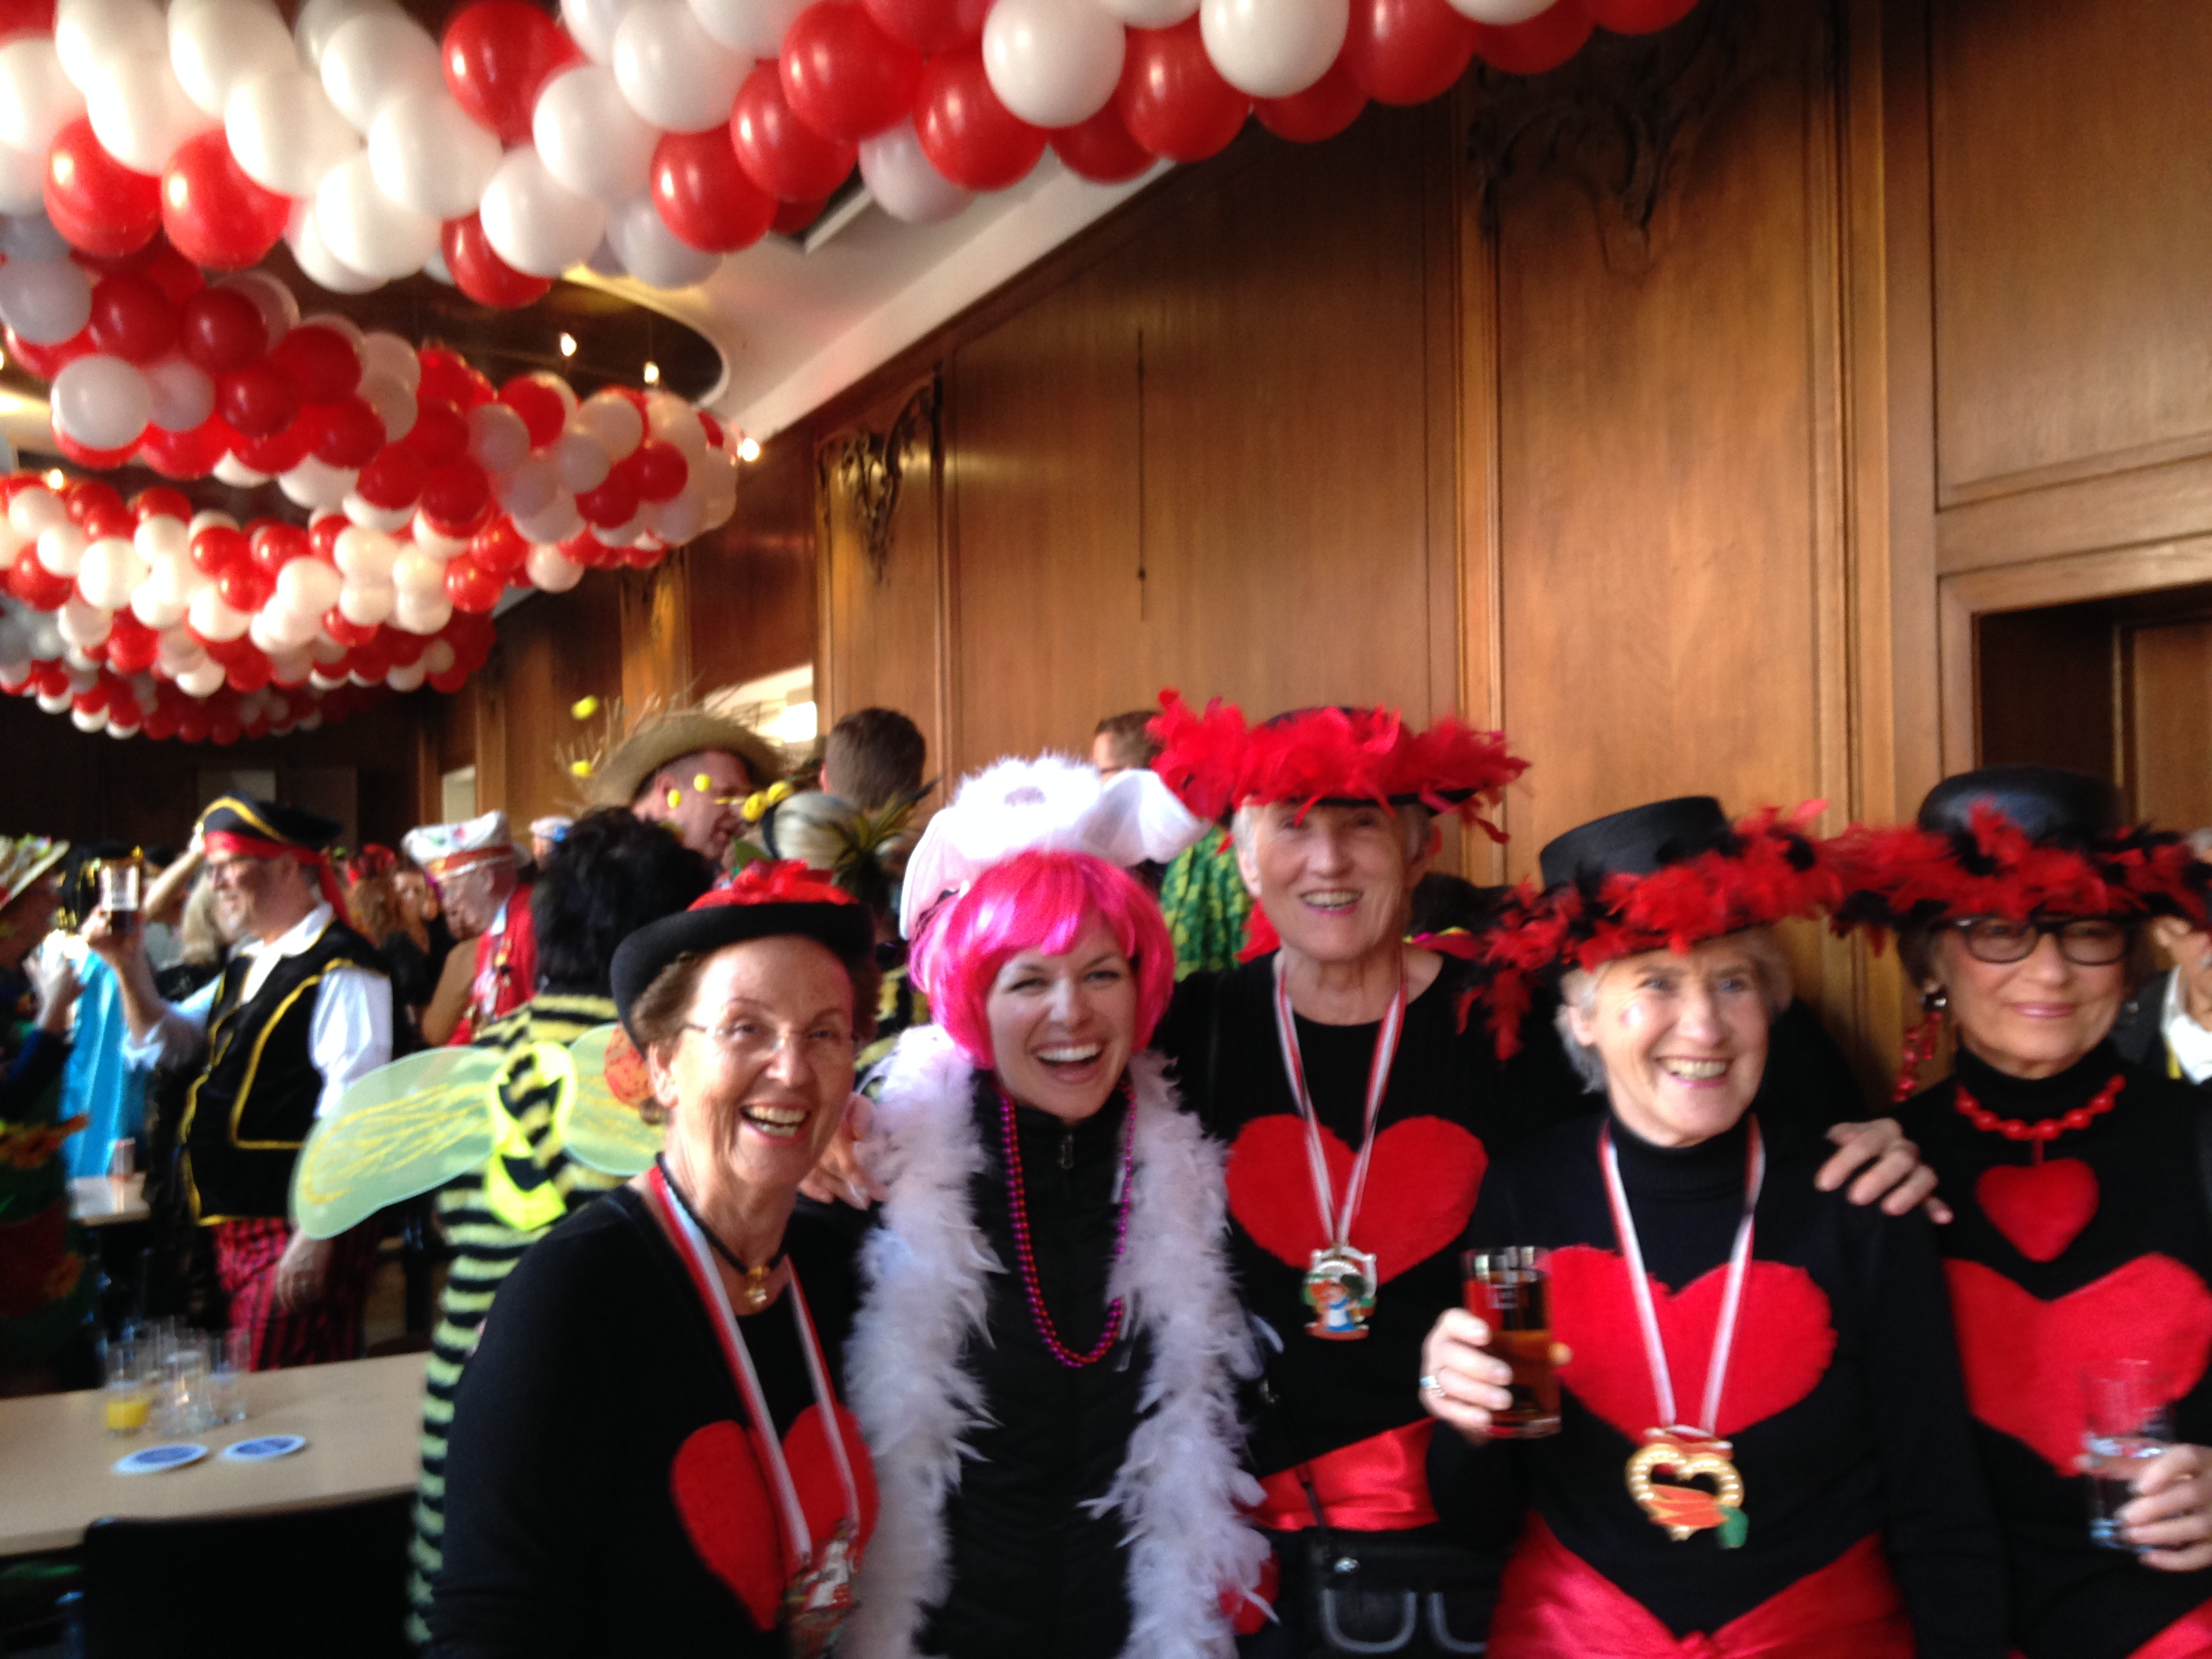 Storming the Rathaus + Keeping Up with the Karnevalians | The B Diary